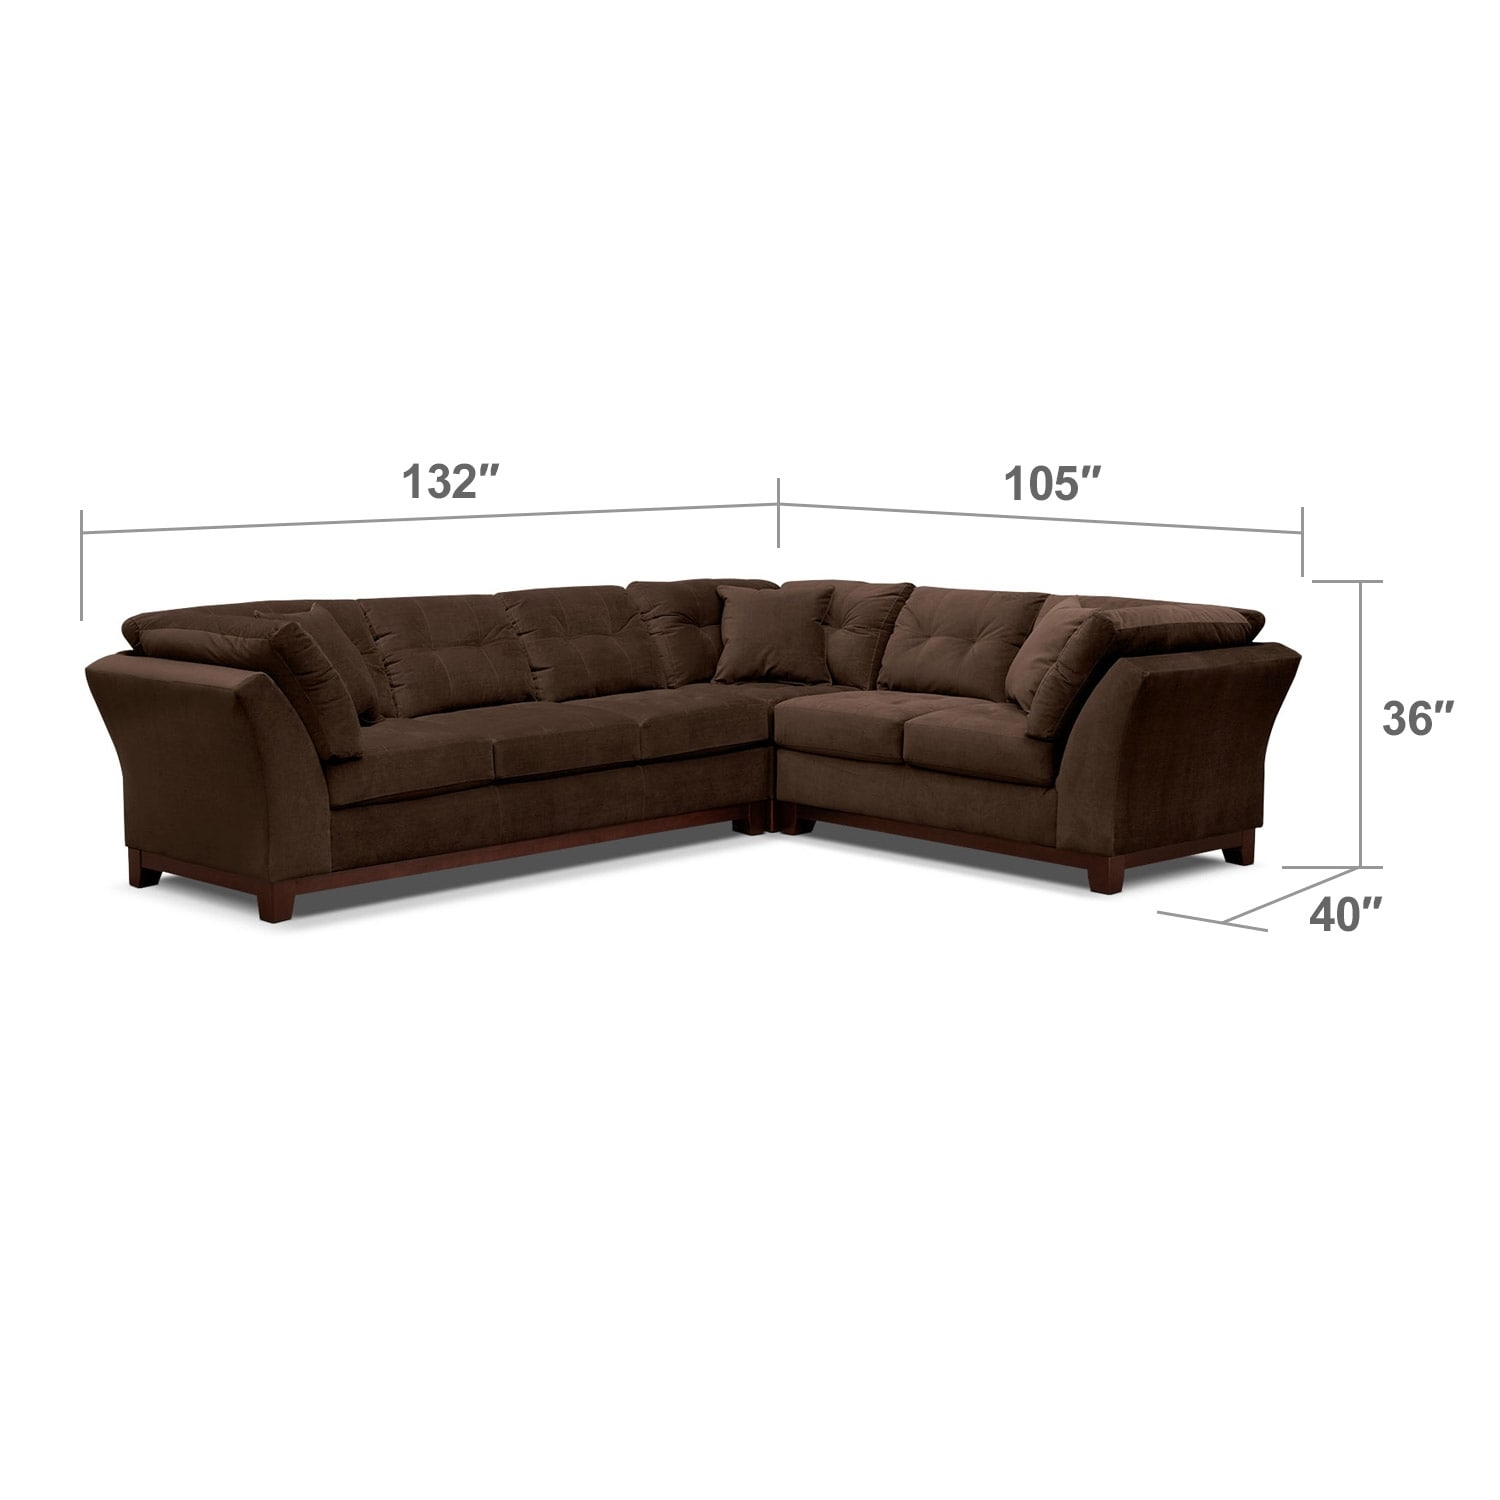 Living Room Furniture - Solace 3-Piece Left-Facing Sofa Sectional - Chocolate